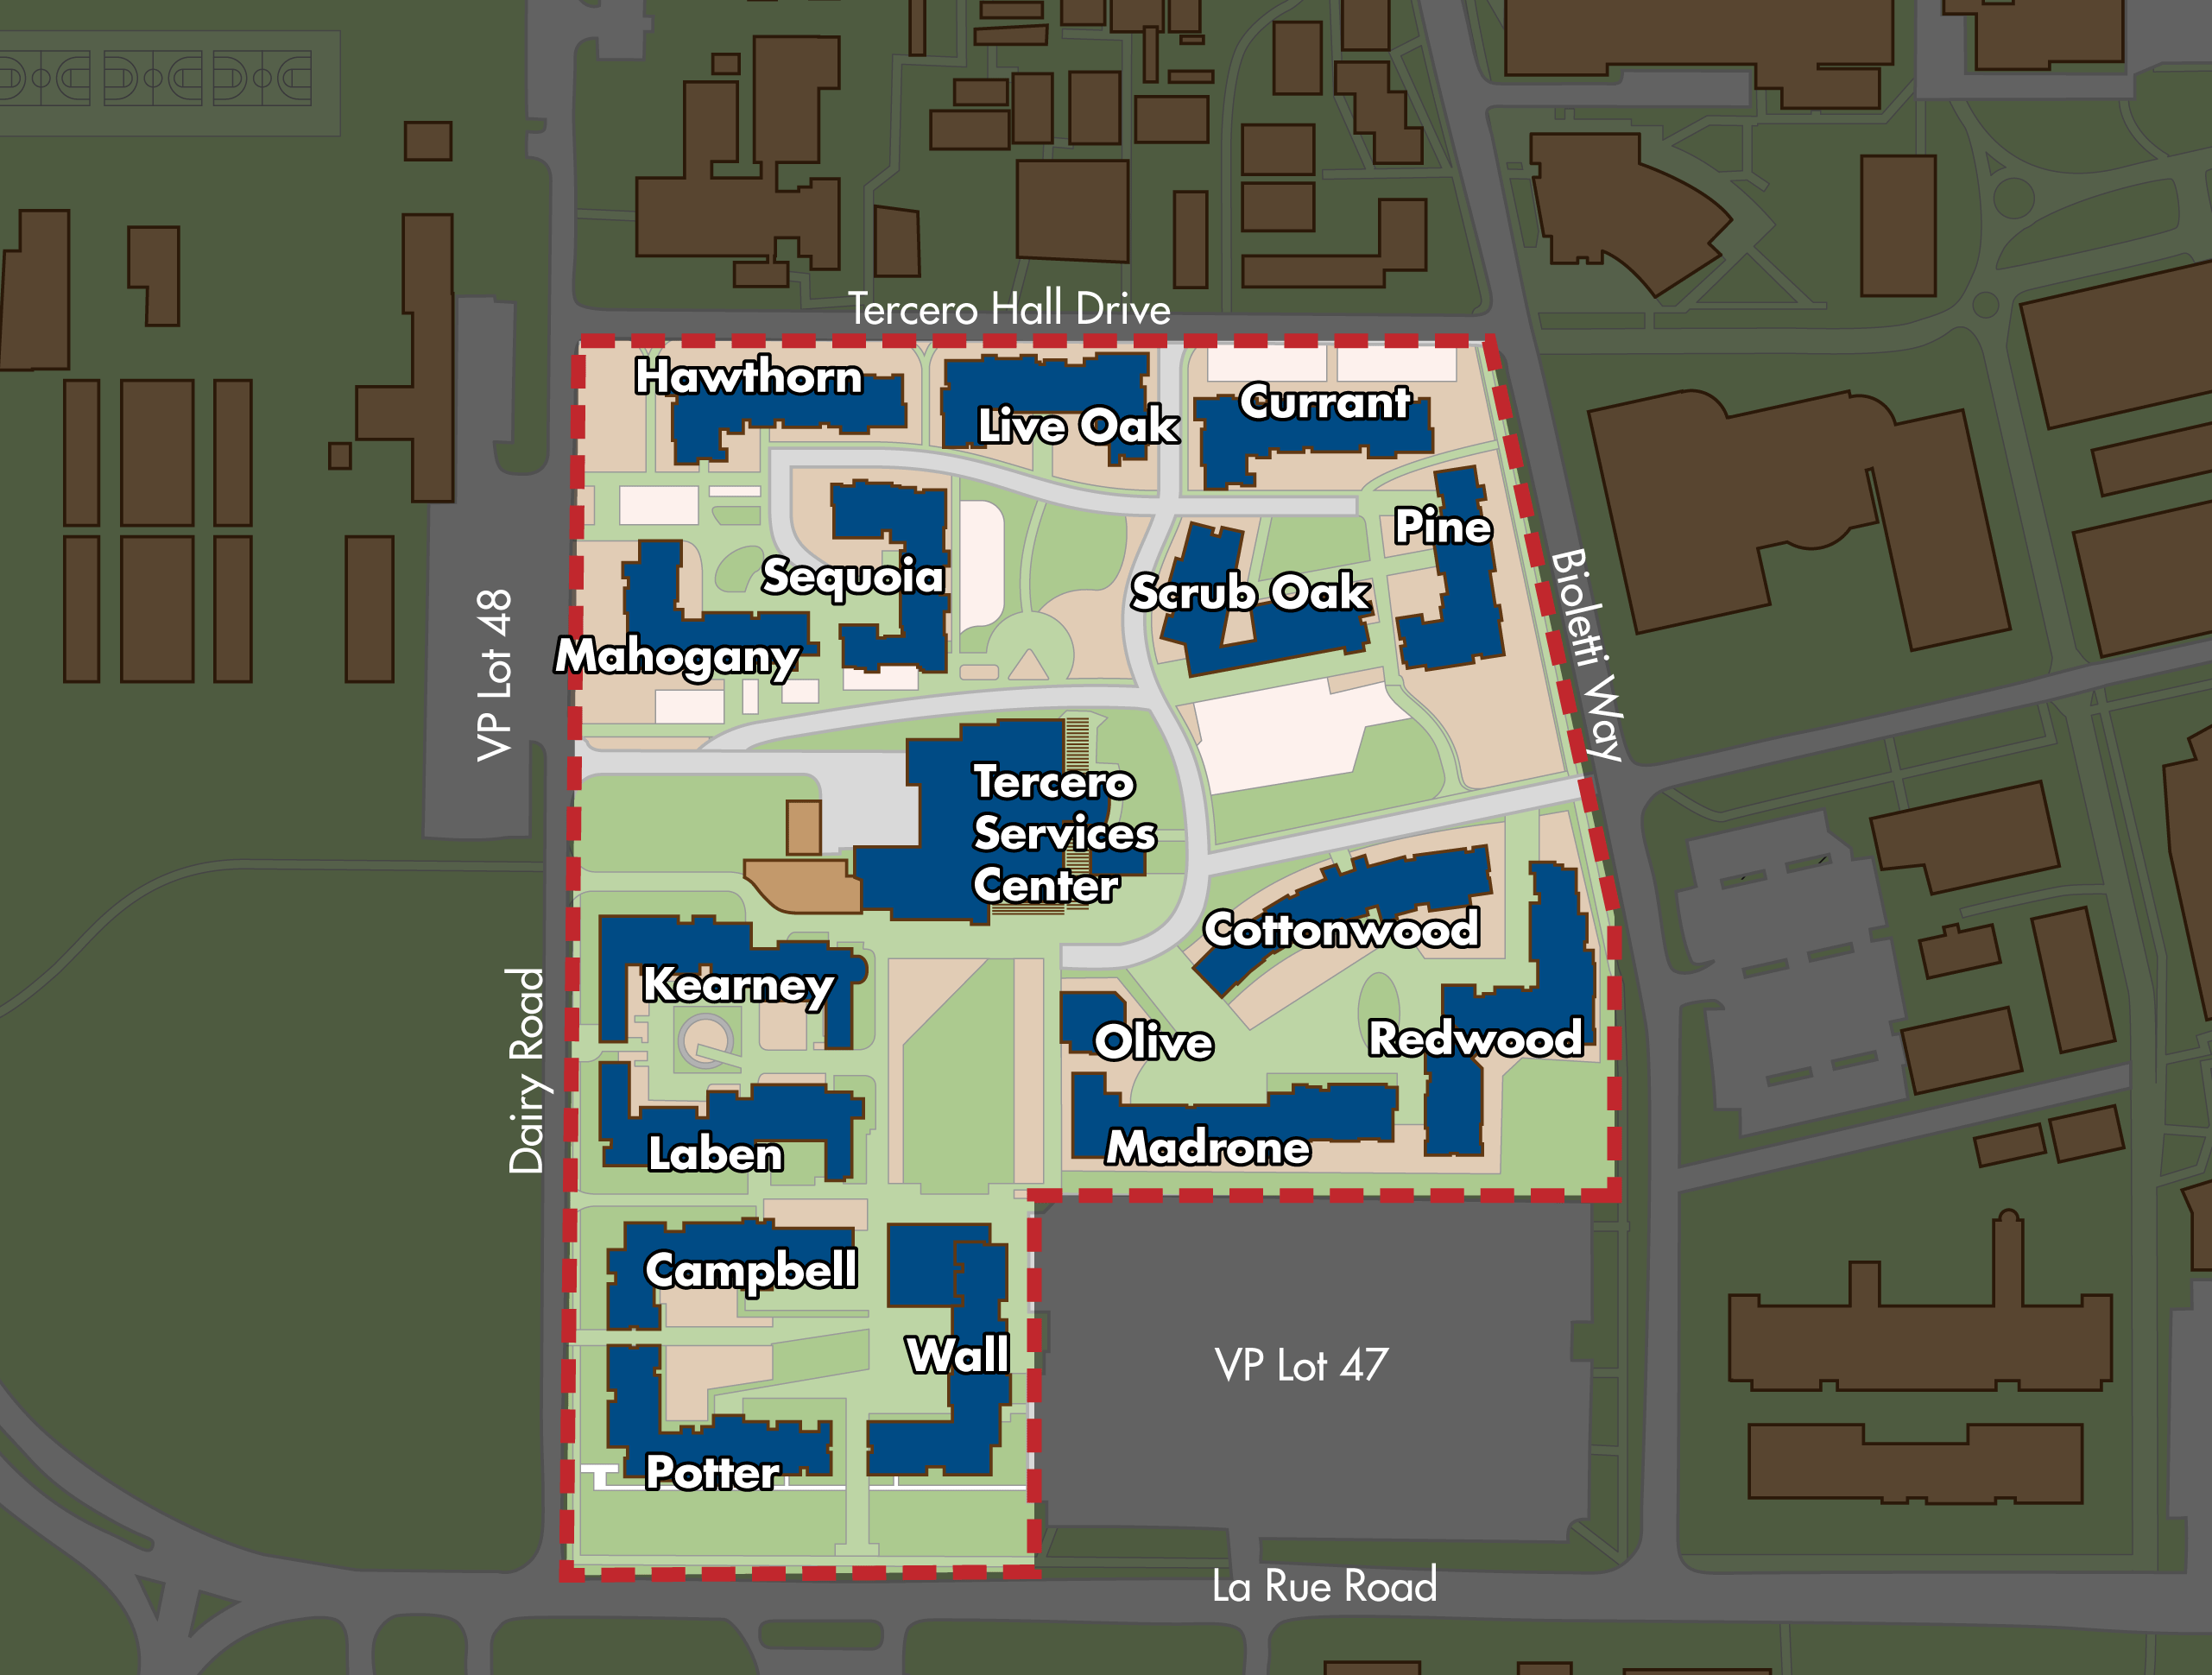 Map of the Tercero residence hall area